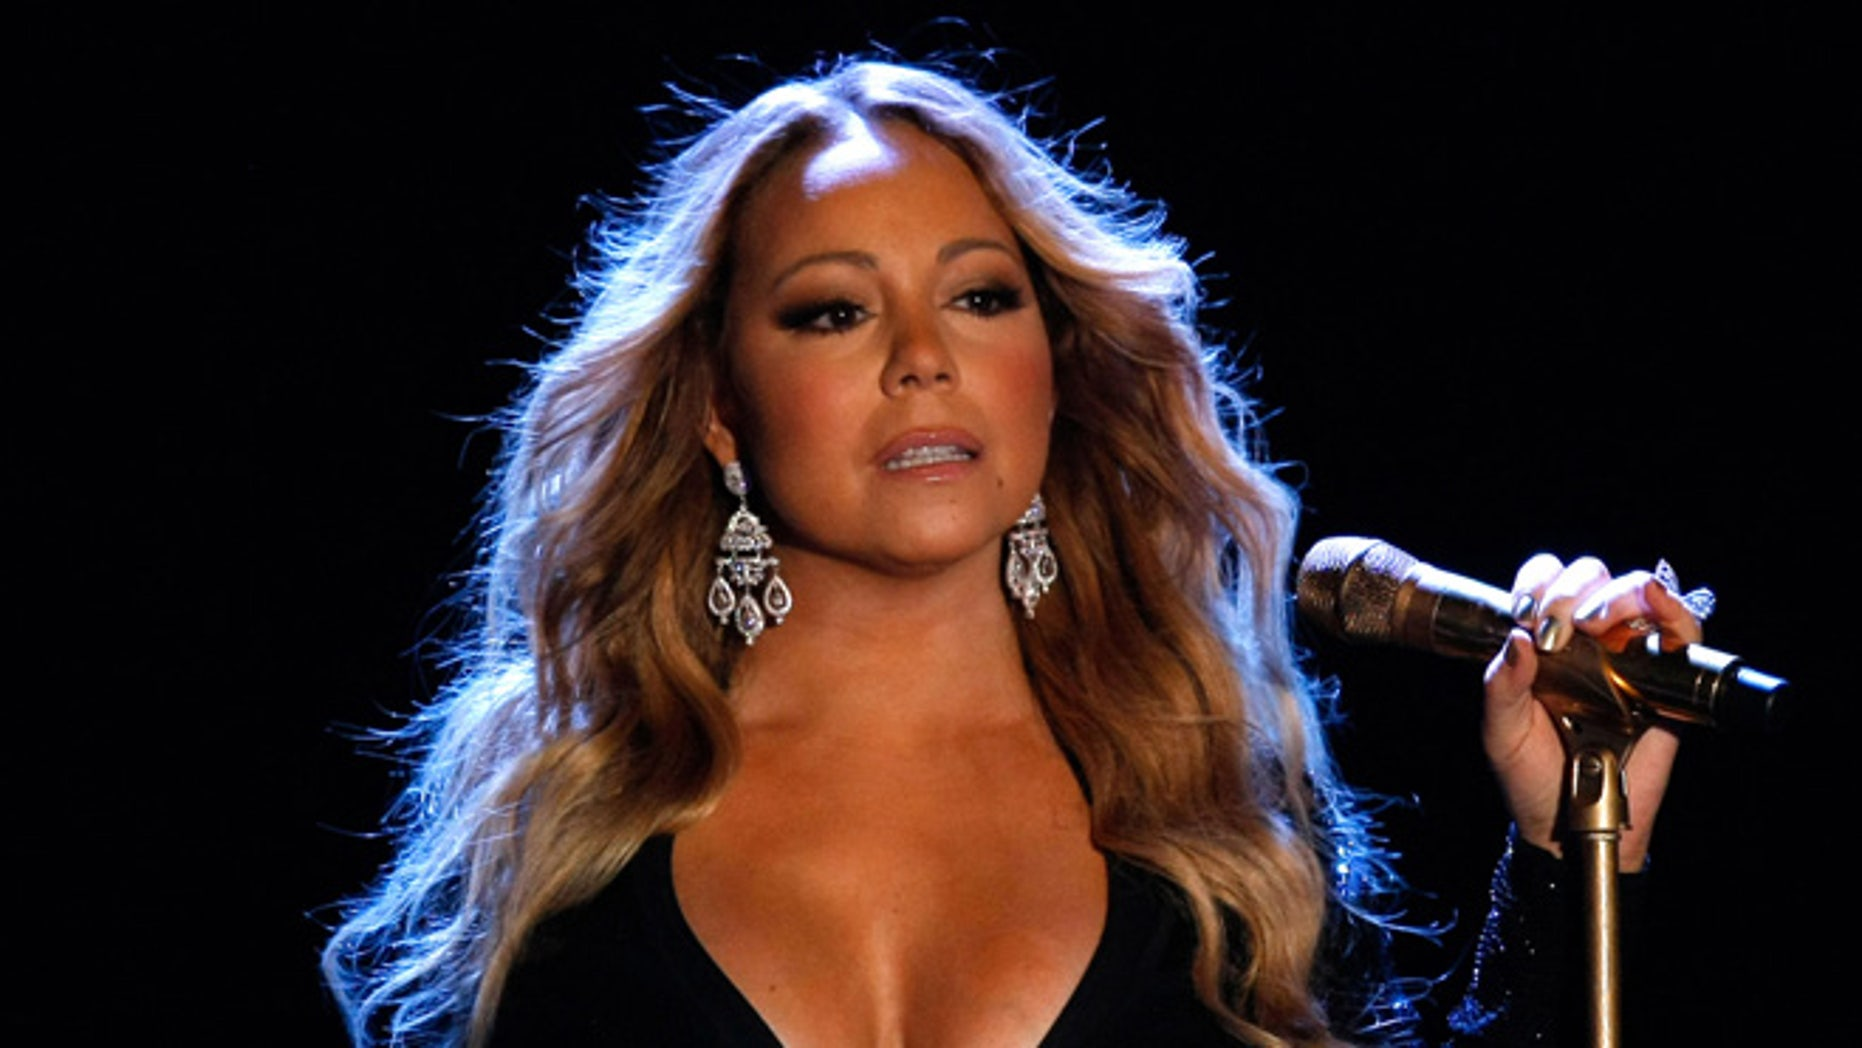 Mariah Carey during the World Music Awards on May 27, 2014,  in Monaco.